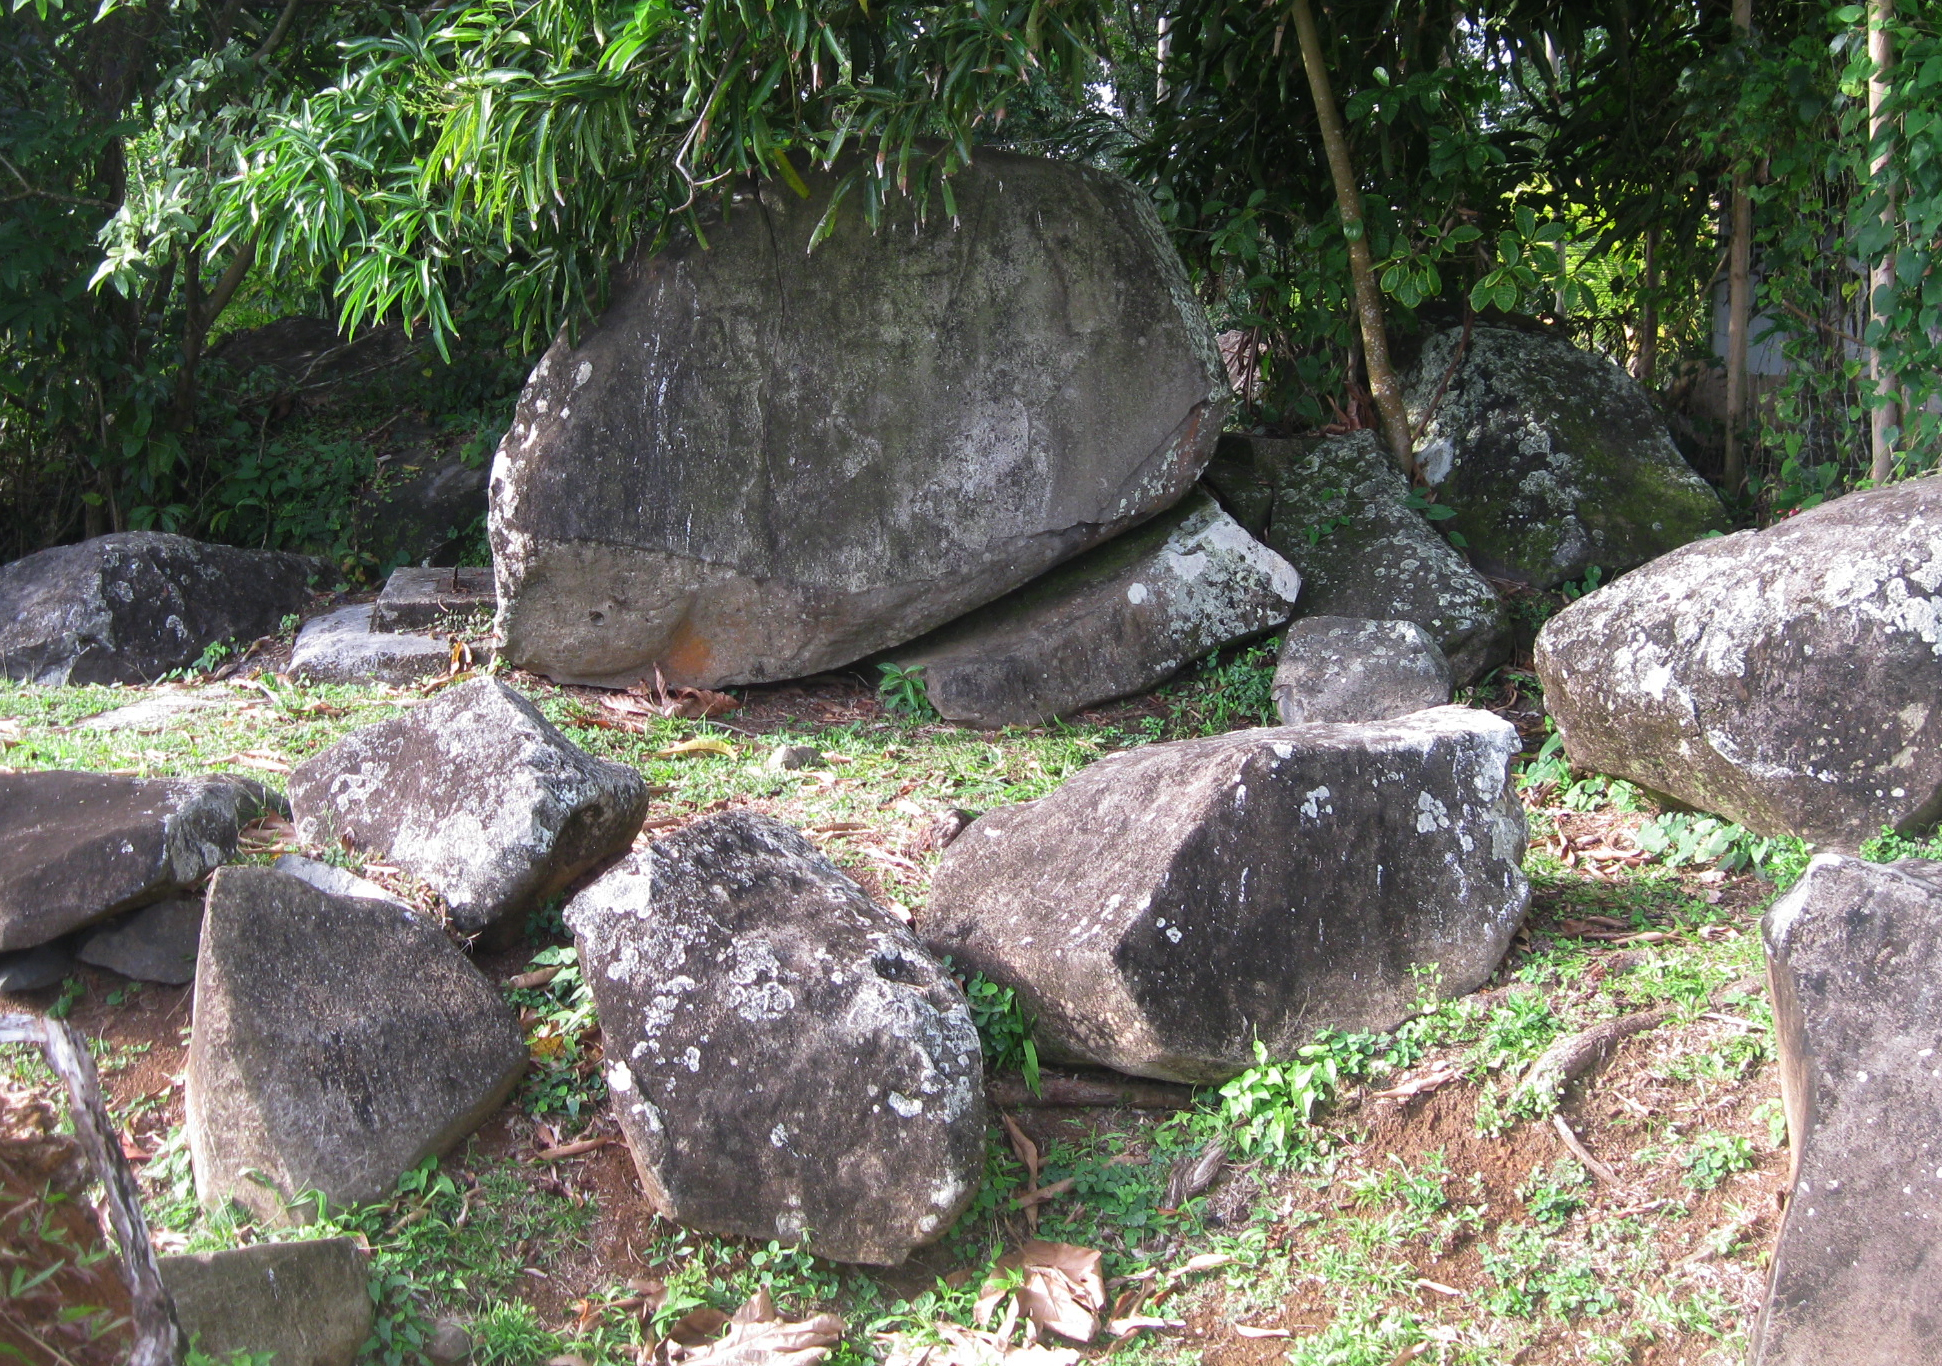 The engraved rocks of Montravail. In the center, the main rock. Photo: Sébastien Perrot-Minnot.